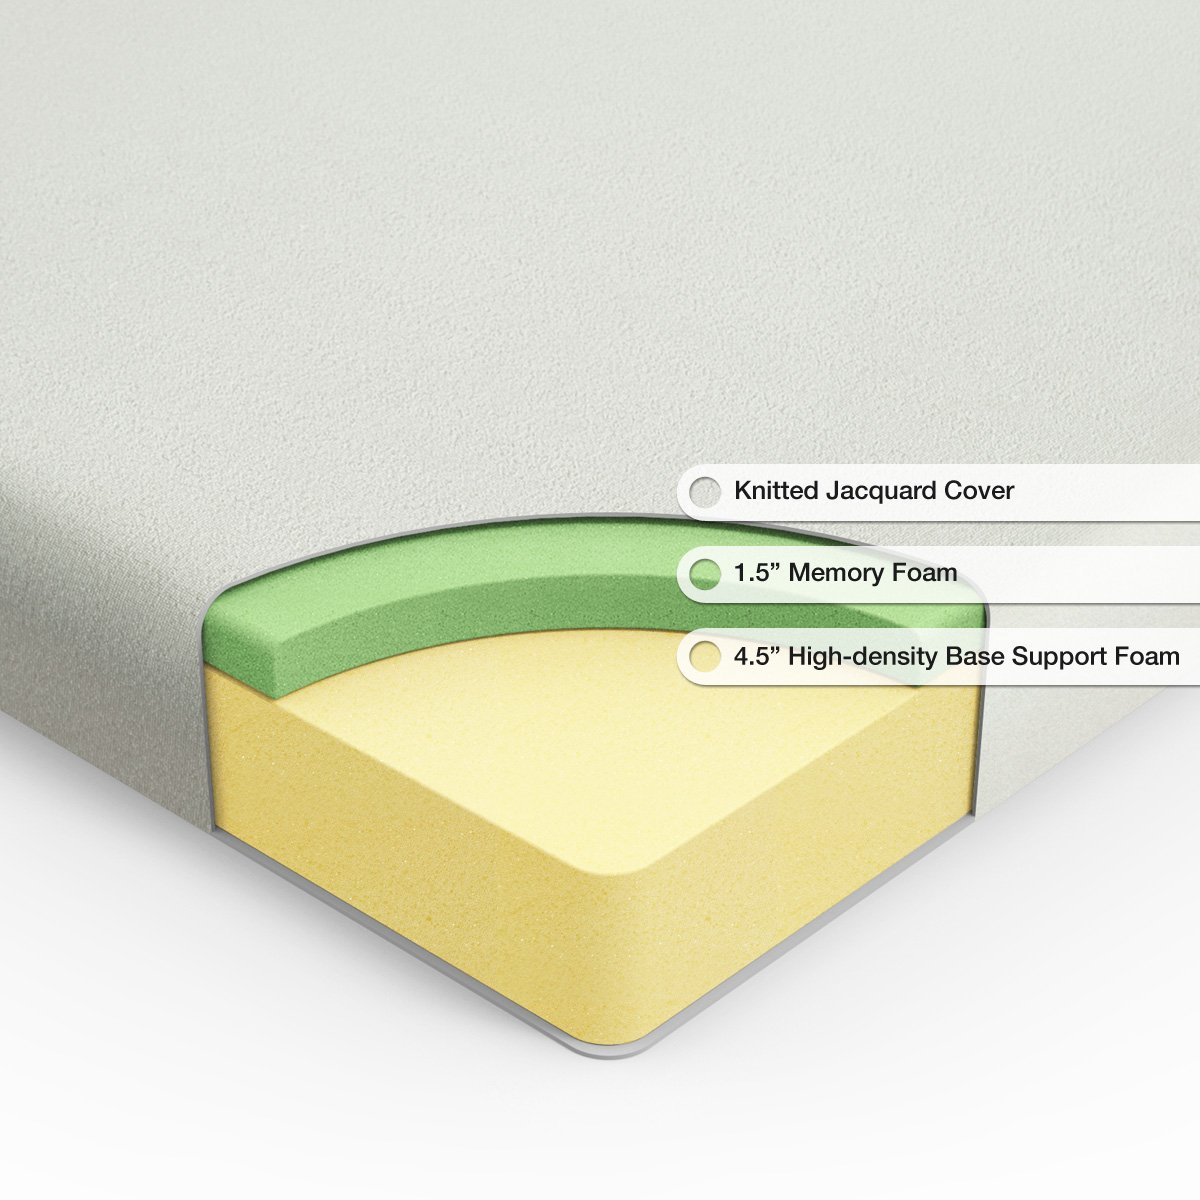 Zinus Sleep Master Ultima Comfort Memory Foam 6 Inch Mattress, Twin